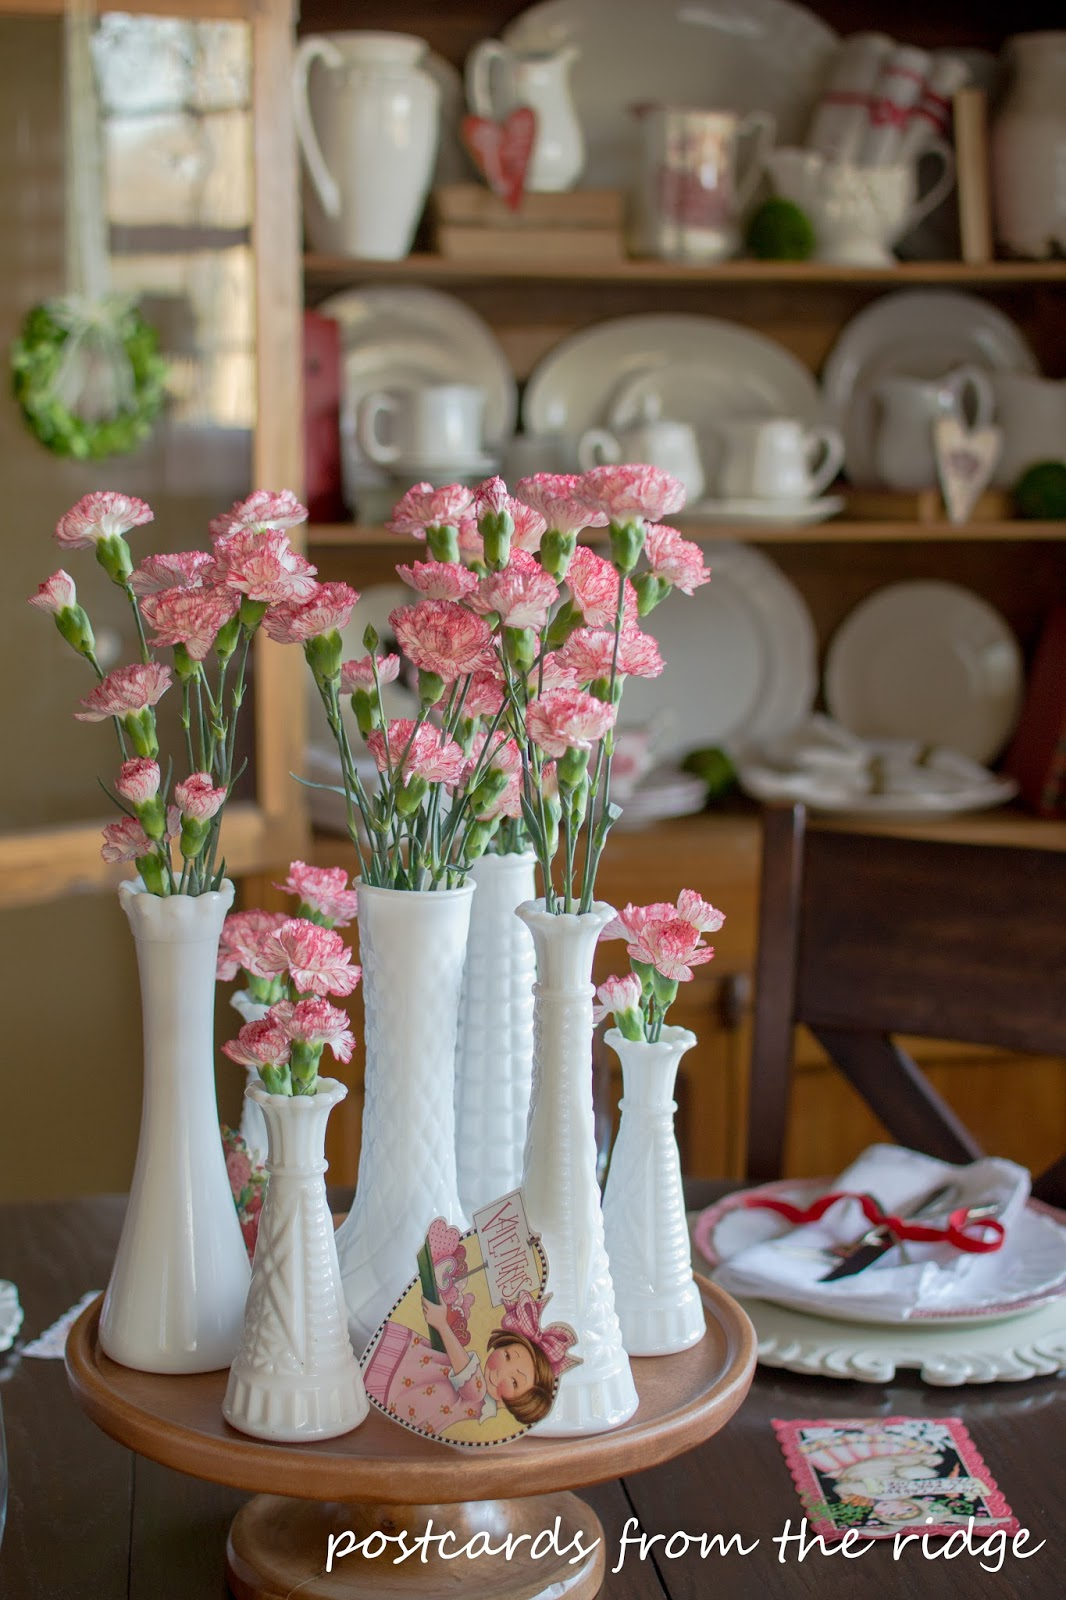 Superior Pretty Milk Glass Vases With Carnations. So Simple But So Pretty.    Postcards From